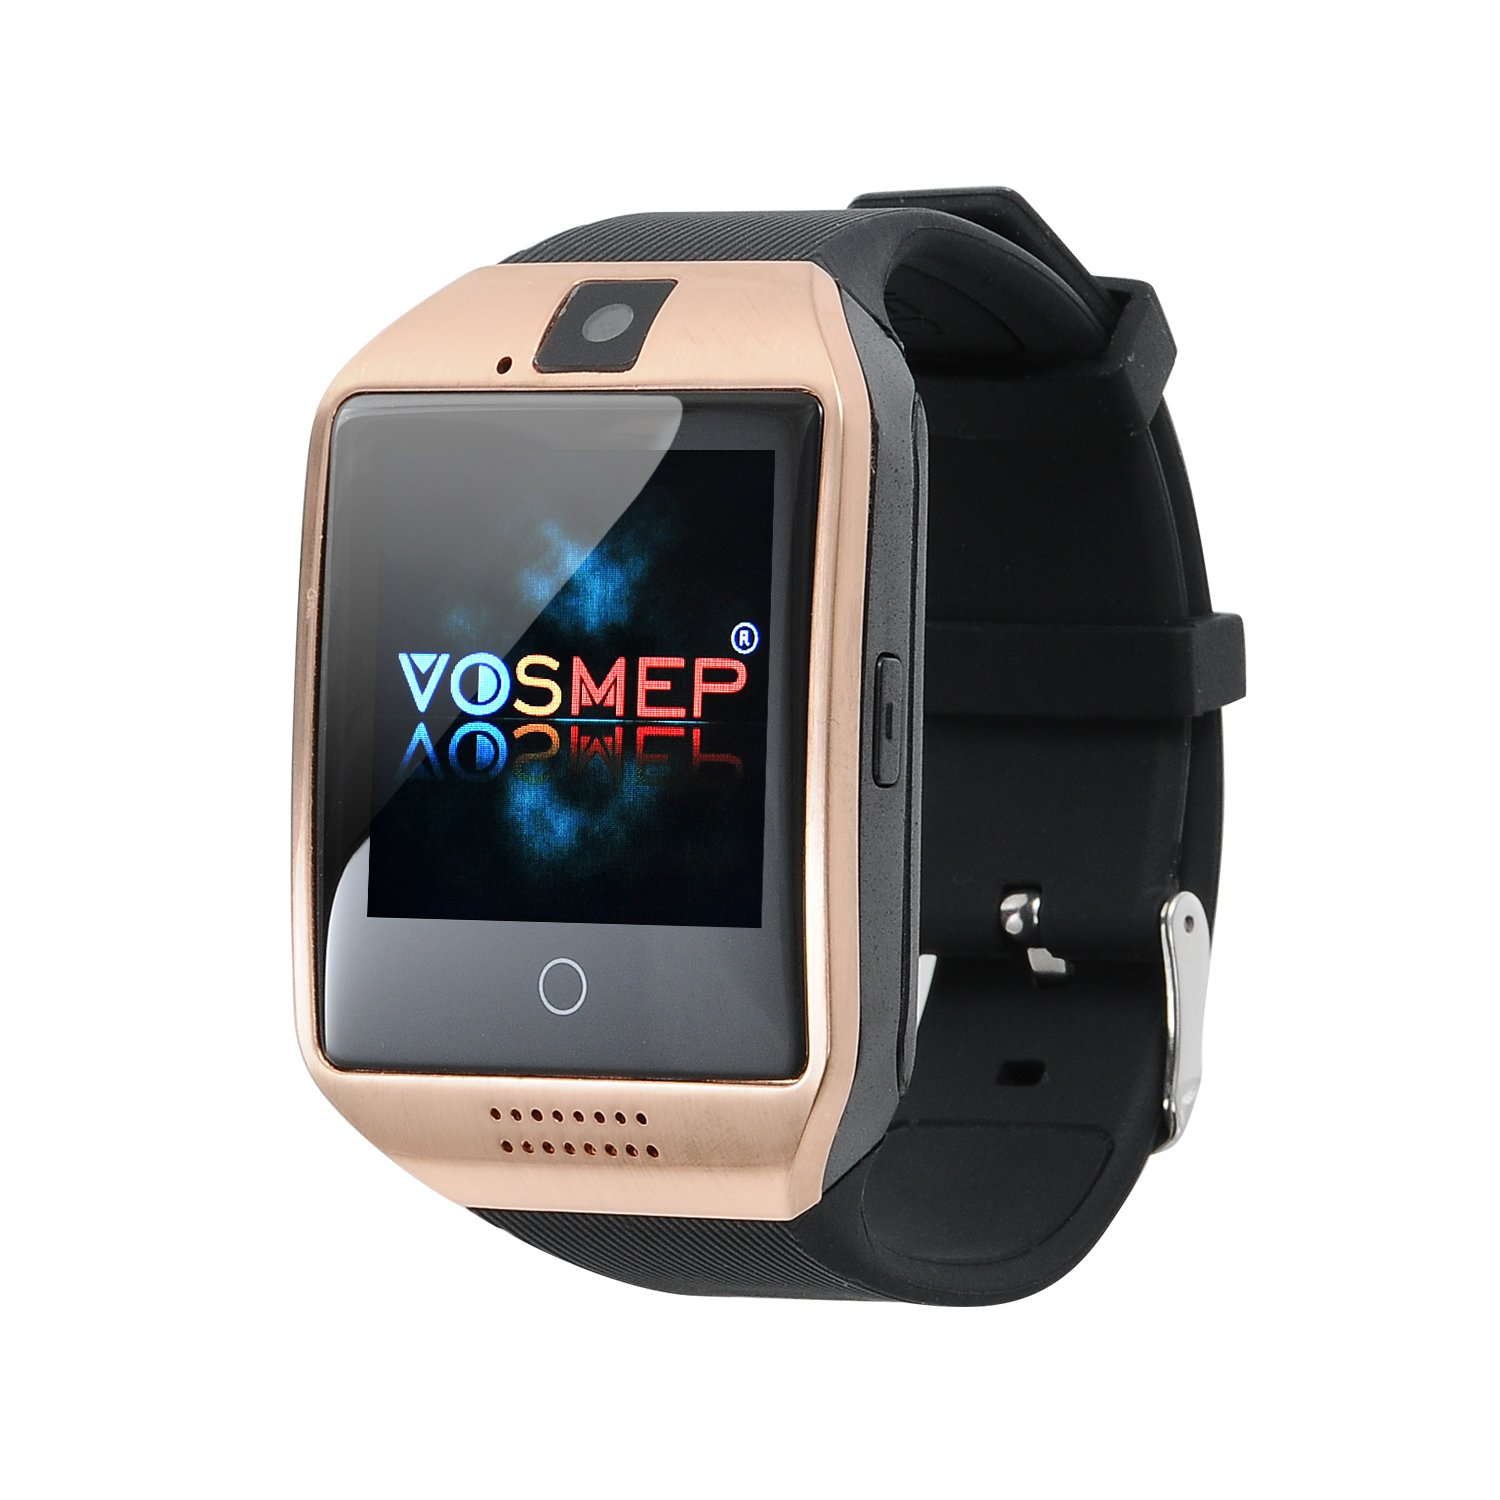 VOSMEP Rejol Inteligente Apro Smart Watch sorporte Facebook Whatsapp con Bluetooth 3.0 Built-in 8G Memoria Teléfono Inteligente Amarre Pulsera con ...